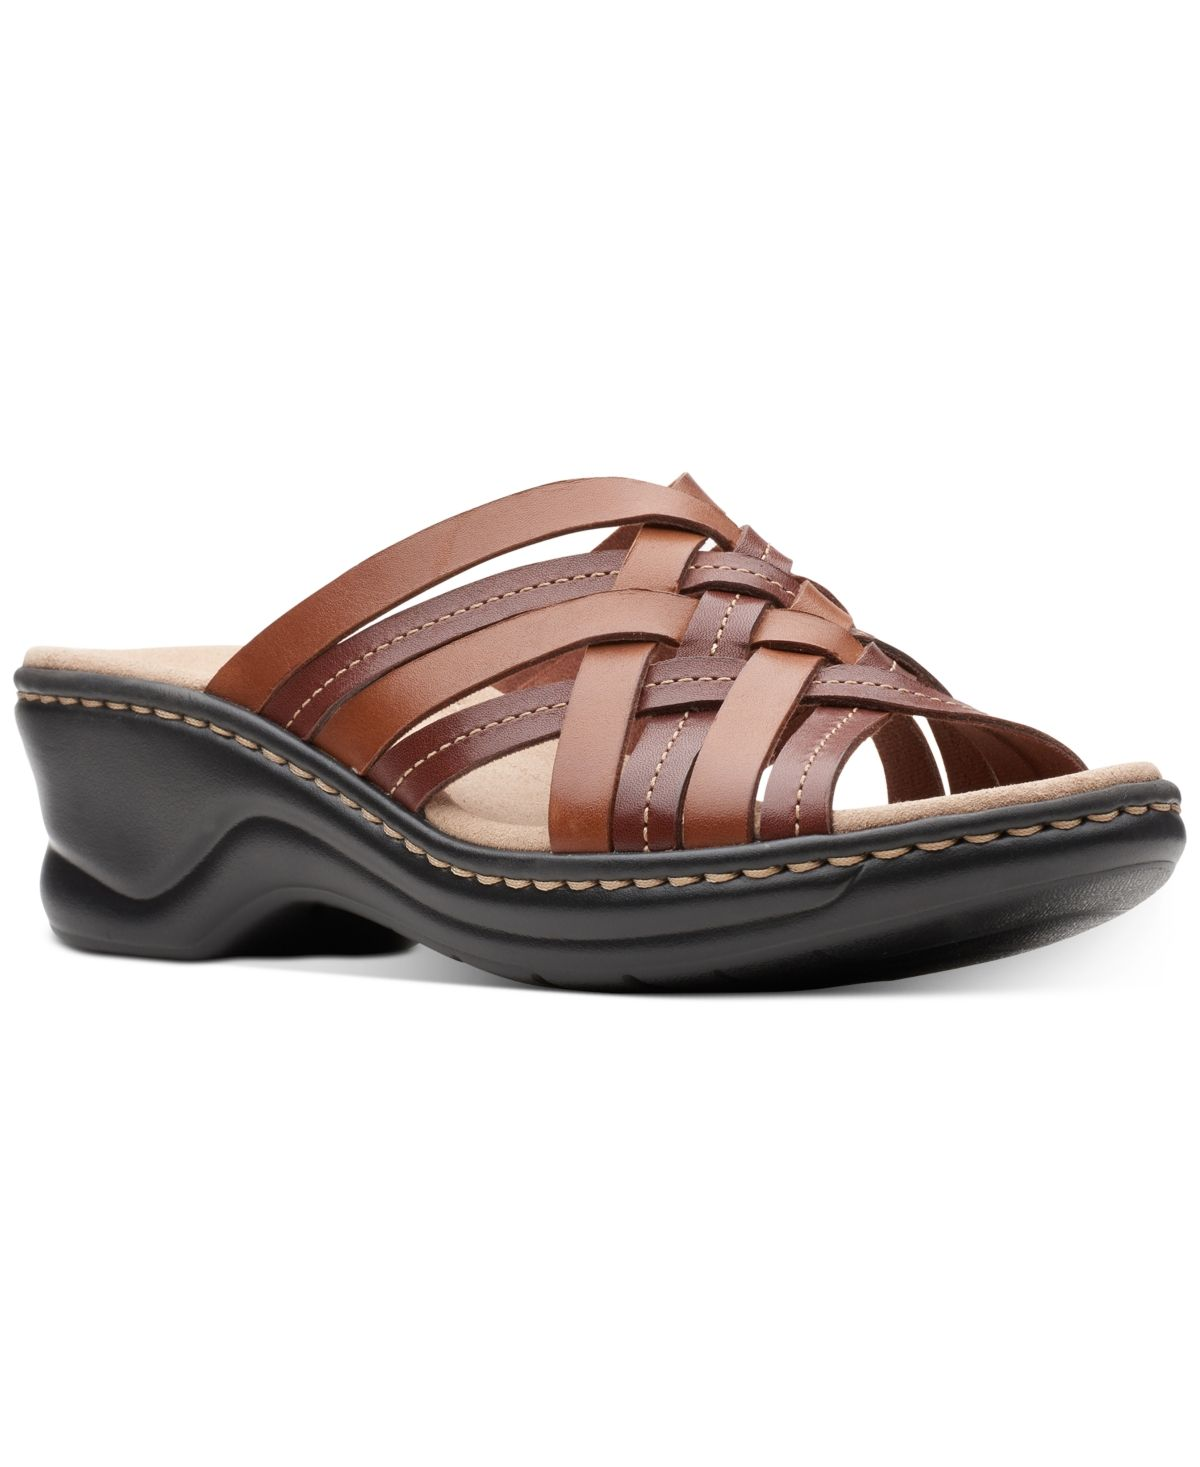 Clarks Collection Women's Lexi Selina Flat Sandals Pewter